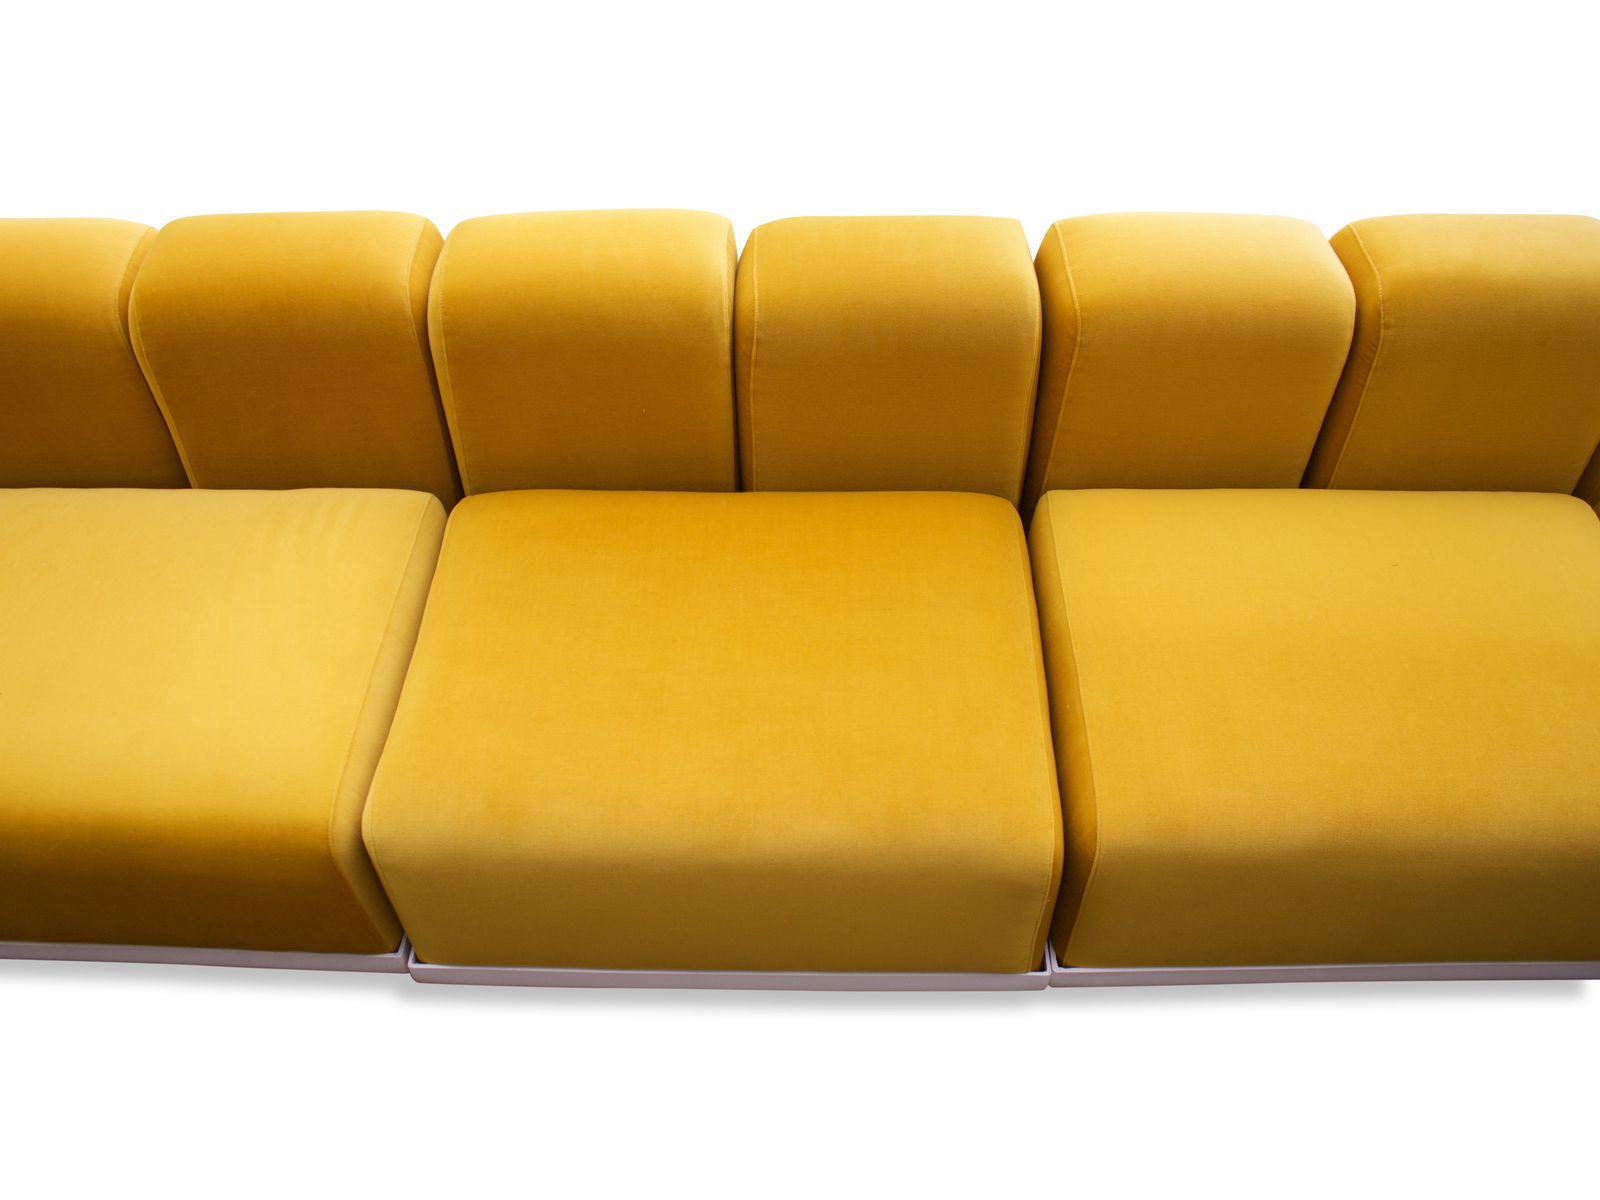 Cooldesign Yellow Sectional sofa